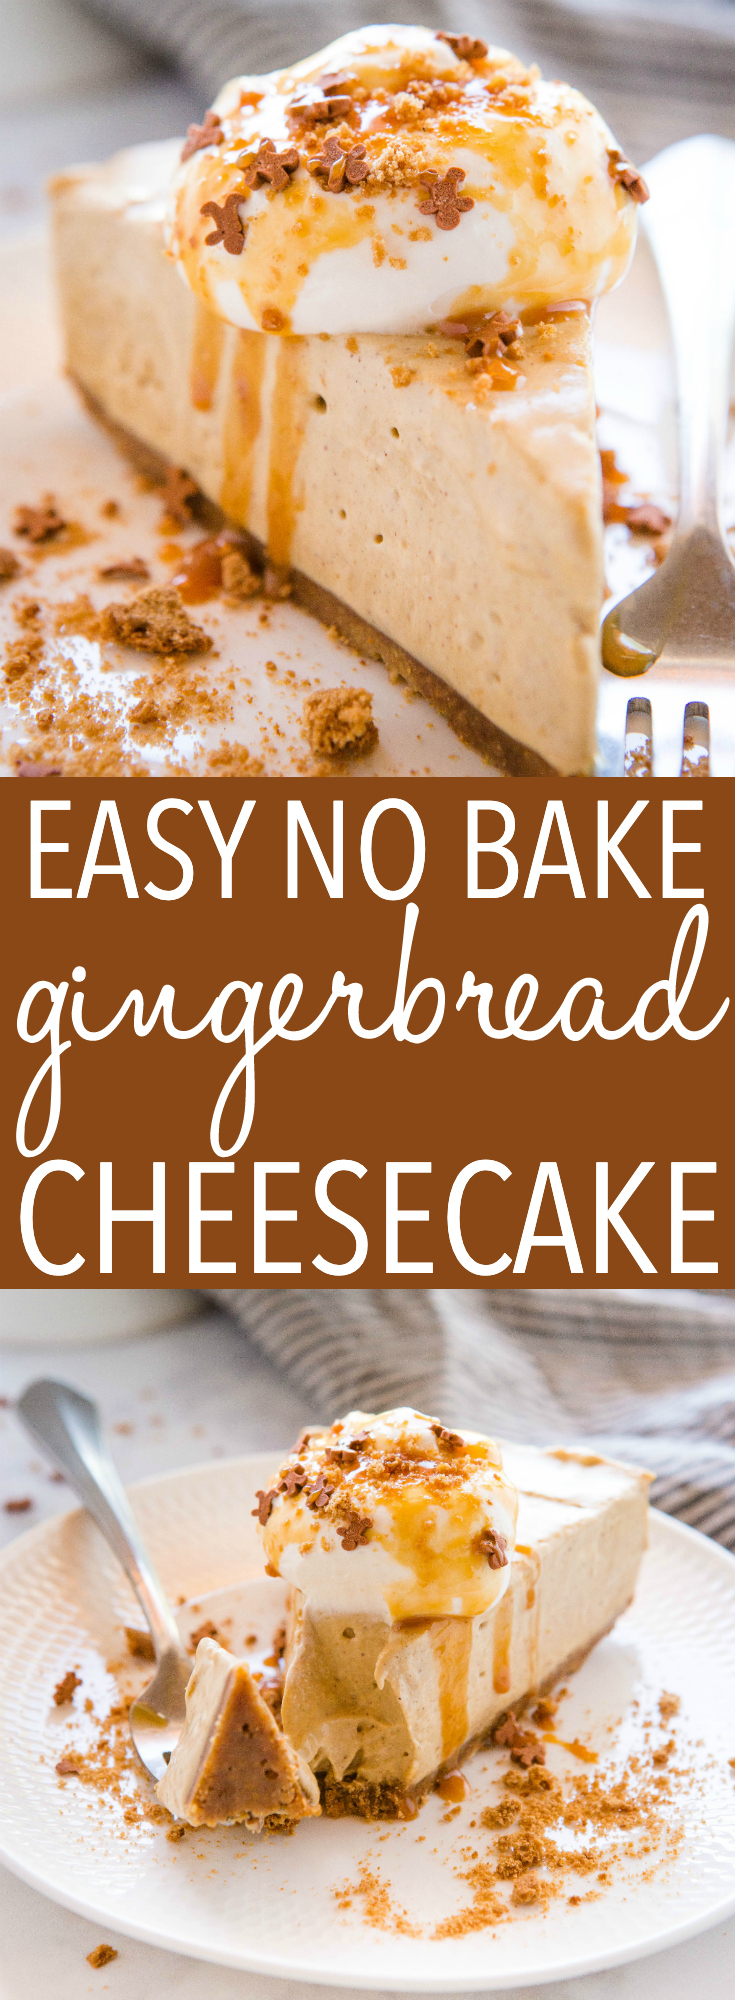 This Easy No Bake Gingerbread Cheesecake is the perfect easy-to-make holiday cheesecake dessert that's creamy, smooth and delicious made with ginger and warm spices, with a gingerbread crust! Recipe from thebusybaker.ca! #cheesecake #gingerbread #christmas #holiday #dessert #entertaining #nobakedessert via @busybakerblog